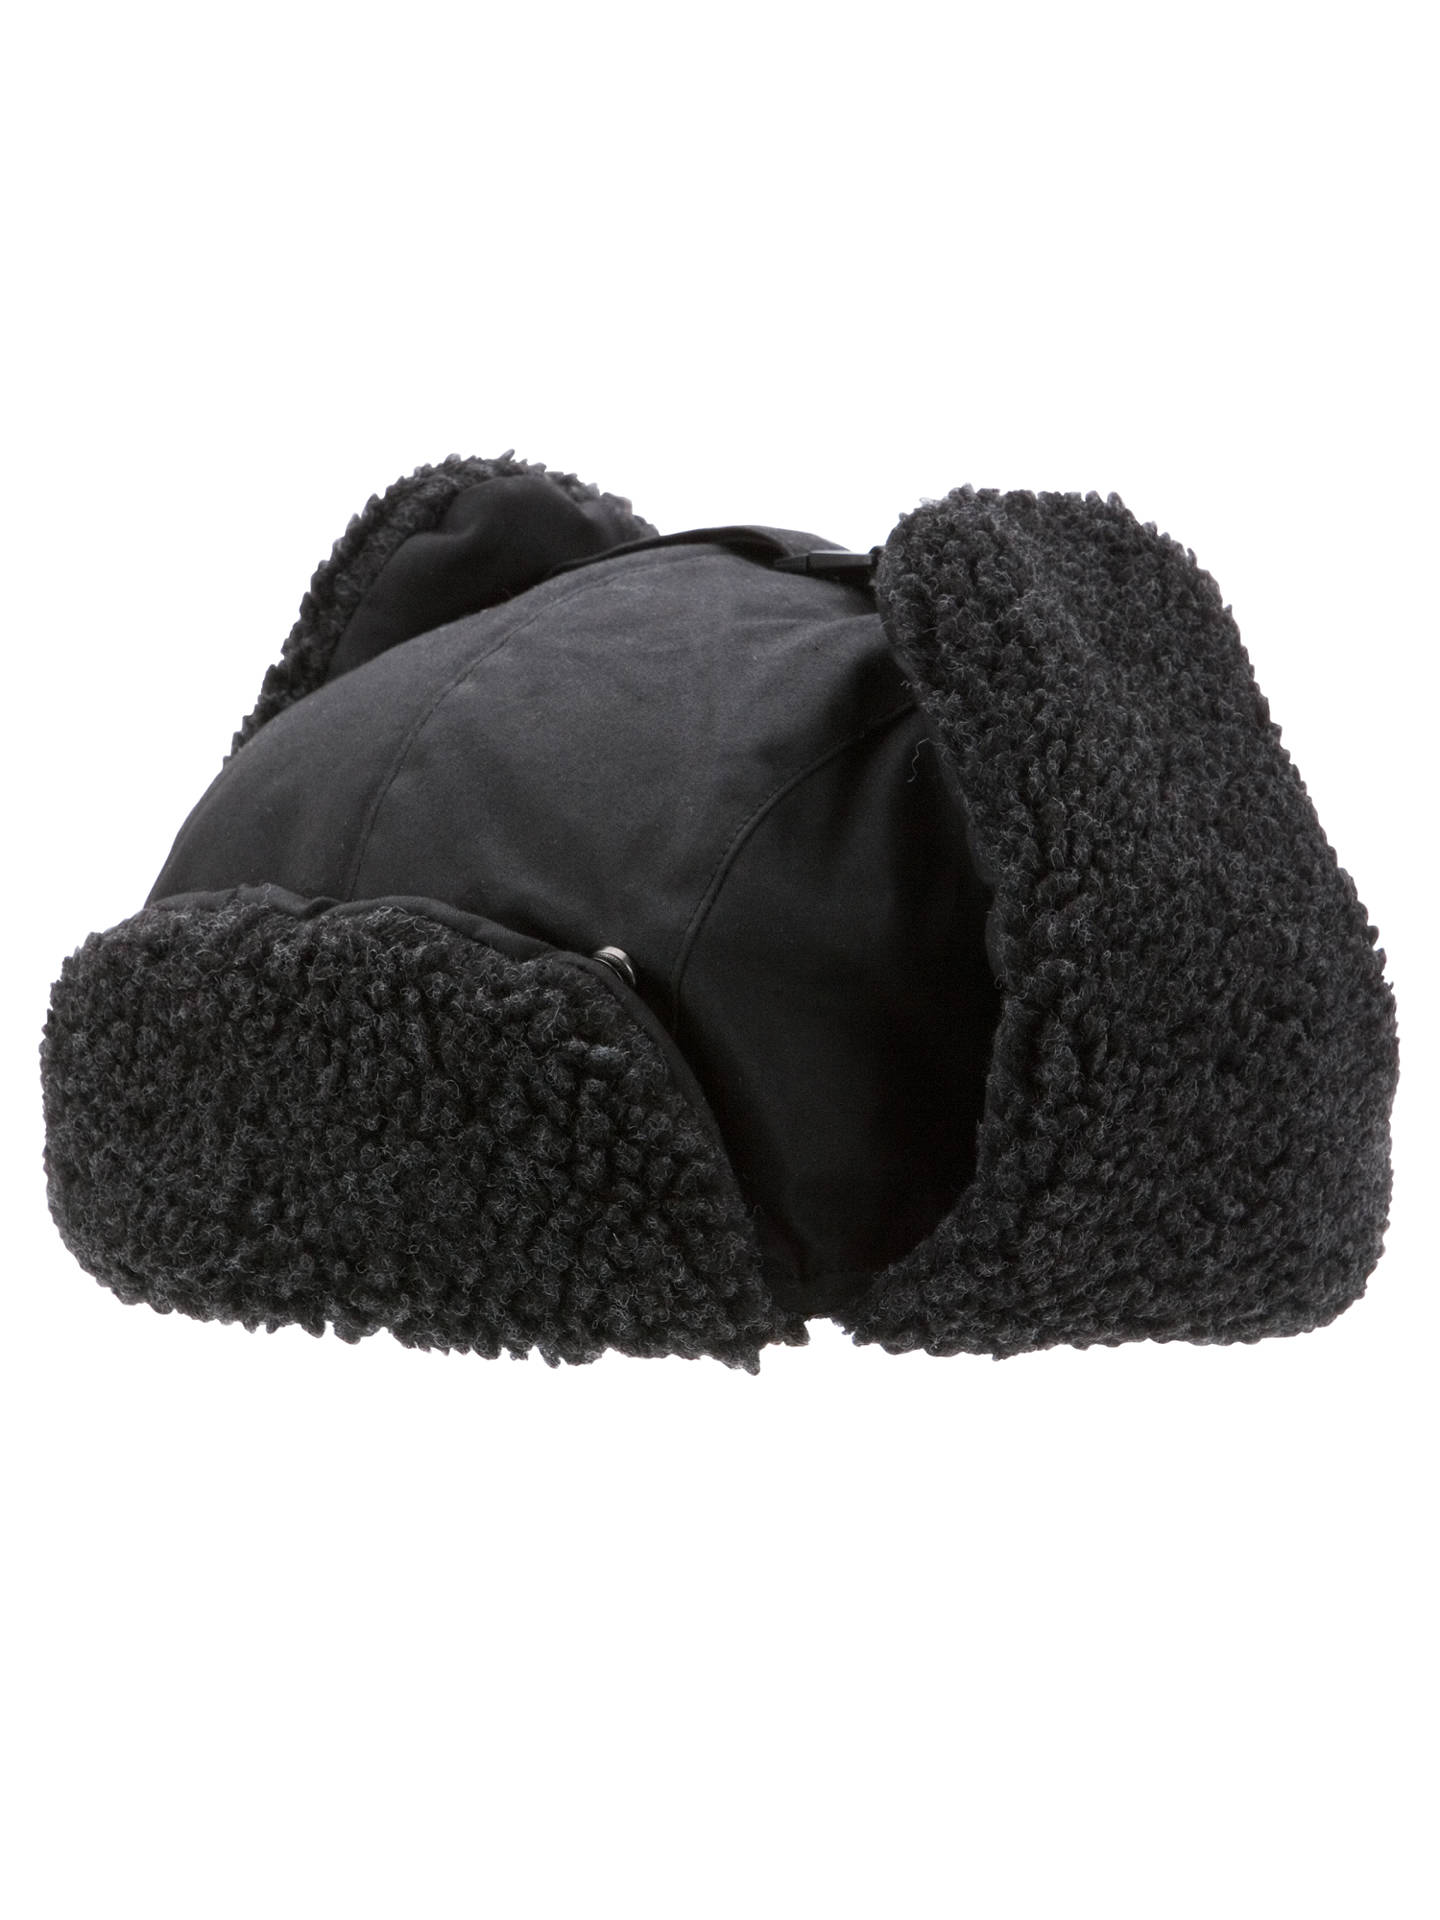 89fe0a979bf6d ... Buy Barbour Fleece Lined Tapper Hat, Black, M Online at johnlewis.com